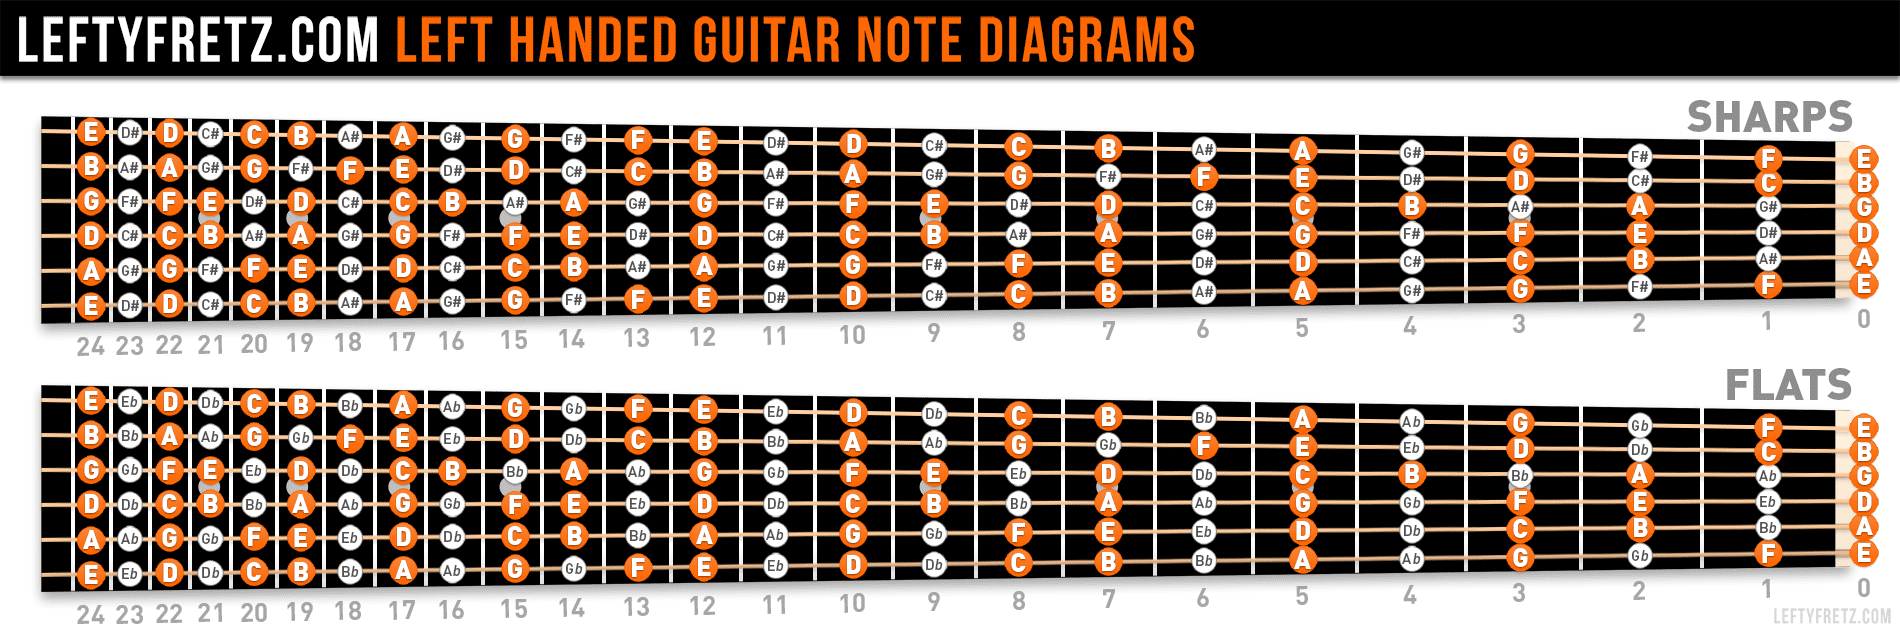 left handed guitar fretboard diagram learn the notes. Black Bedroom Furniture Sets. Home Design Ideas